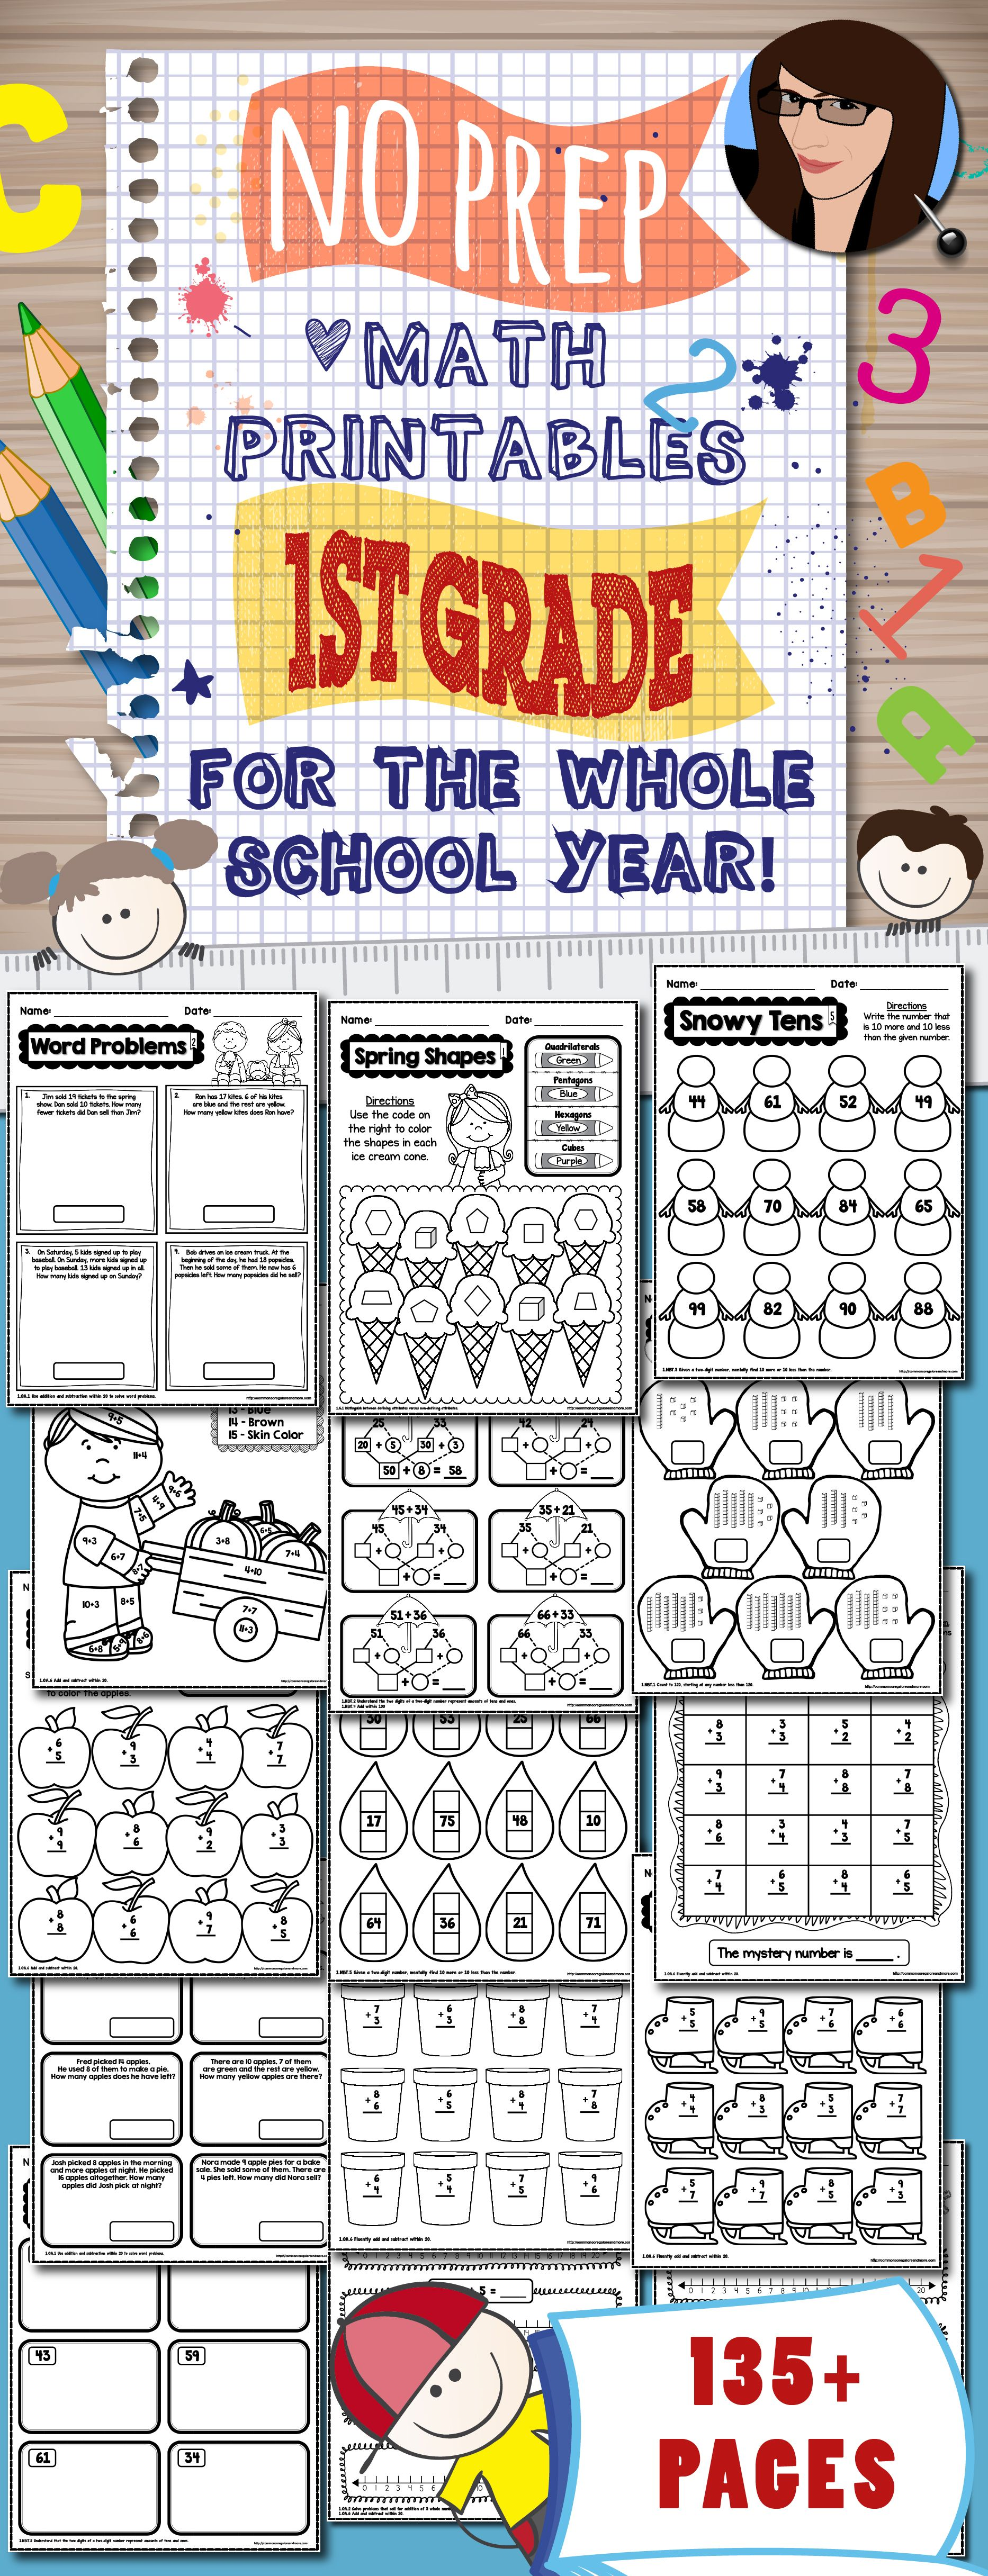 No Prep Math Printables For The Whole School Year